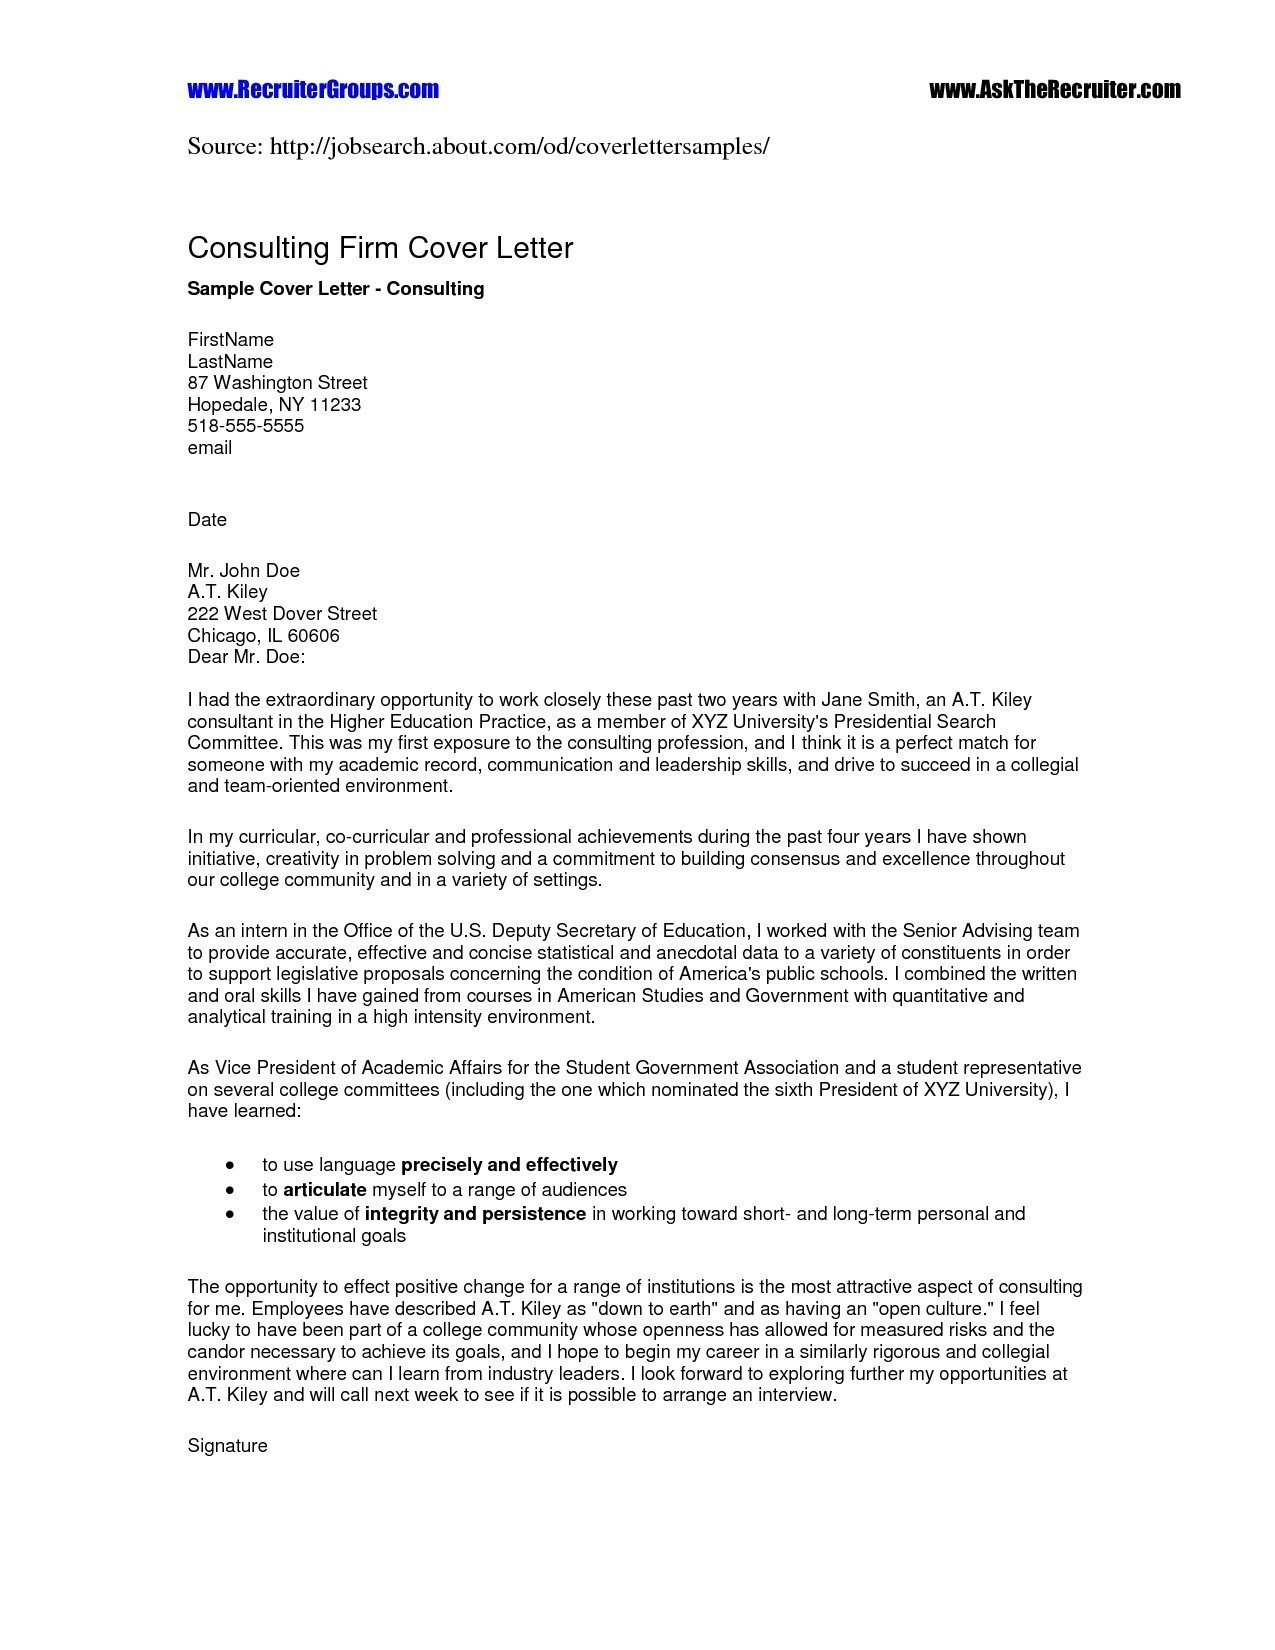 How to Write A formal Grievance Letter Template - Job Application Letter format Template Copy Cover Letter Template Hr